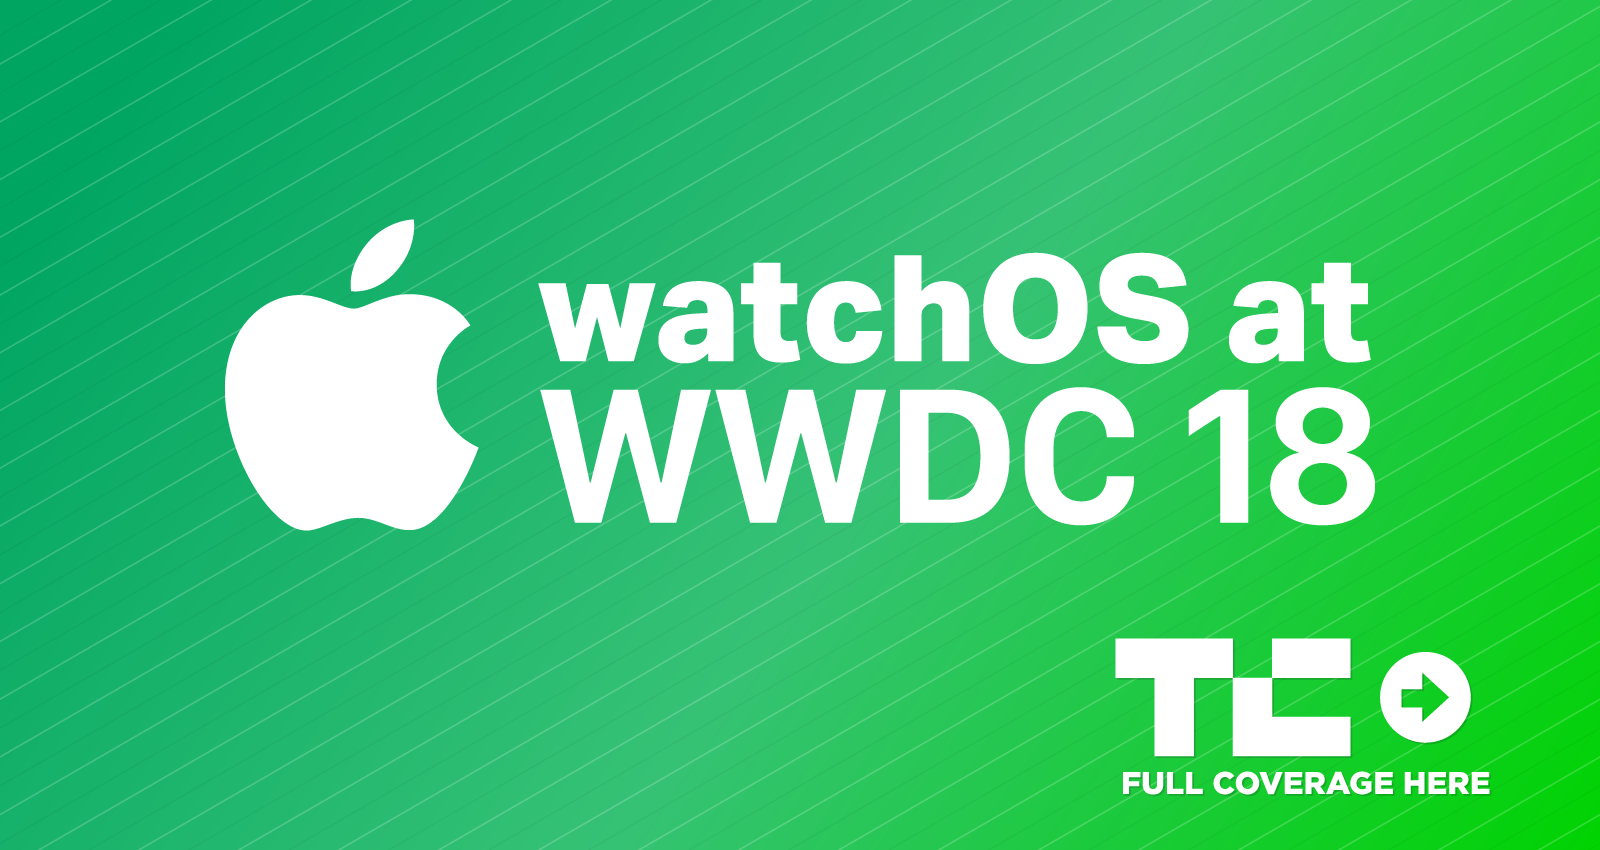 Apple announces watchOS 5, allowing you to compete with friends